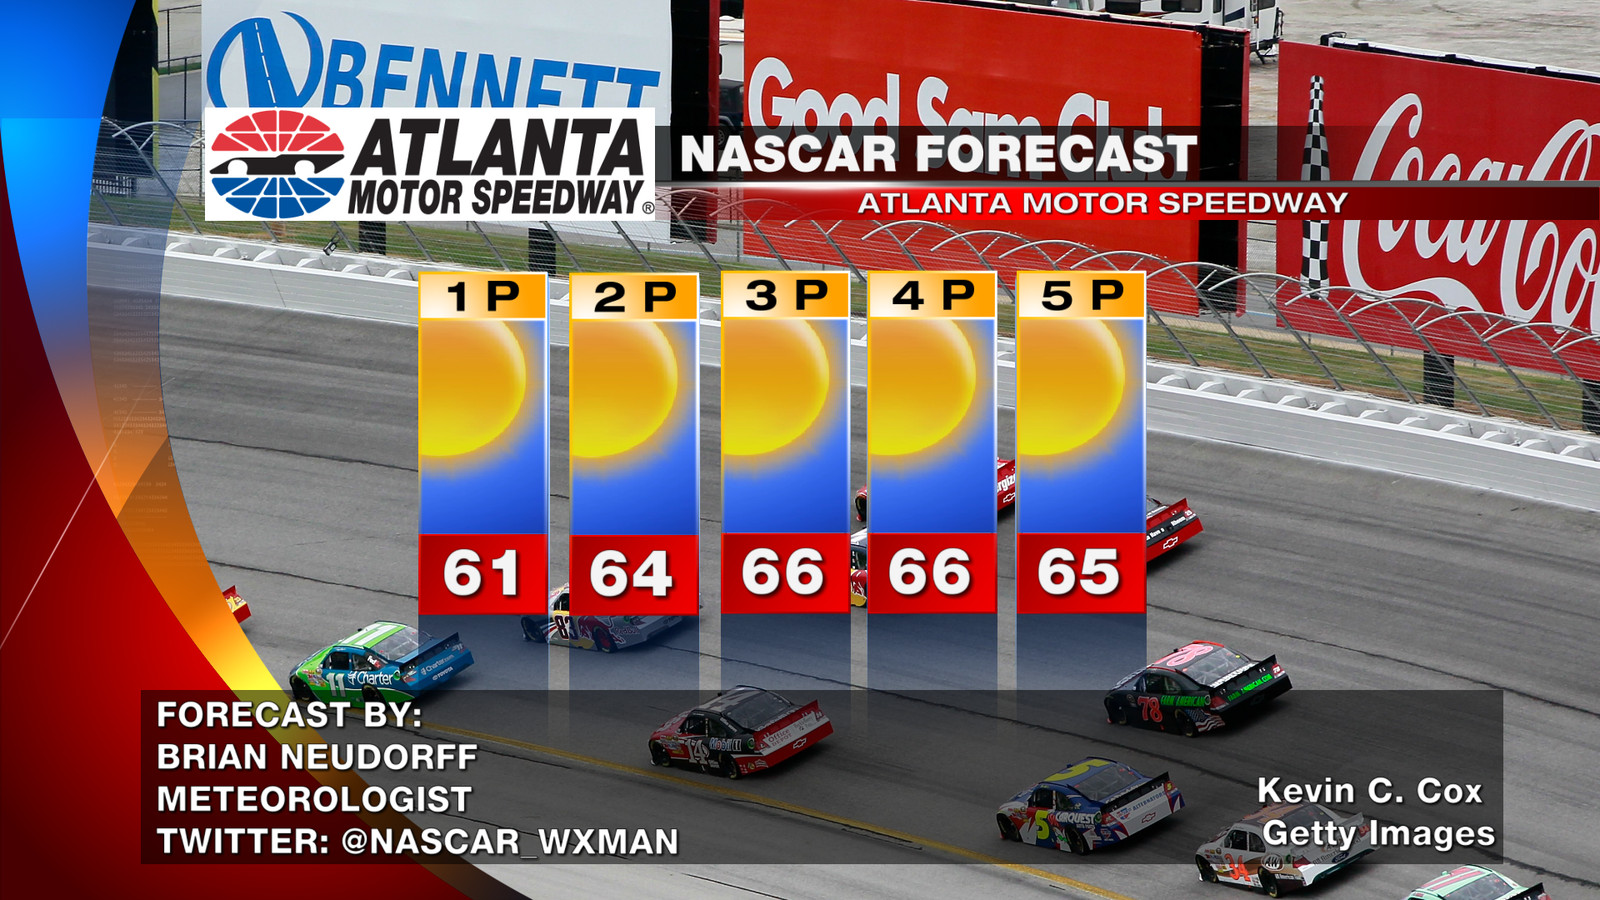 Picture Perfect Race Day Weather For Nascar At Atlanta